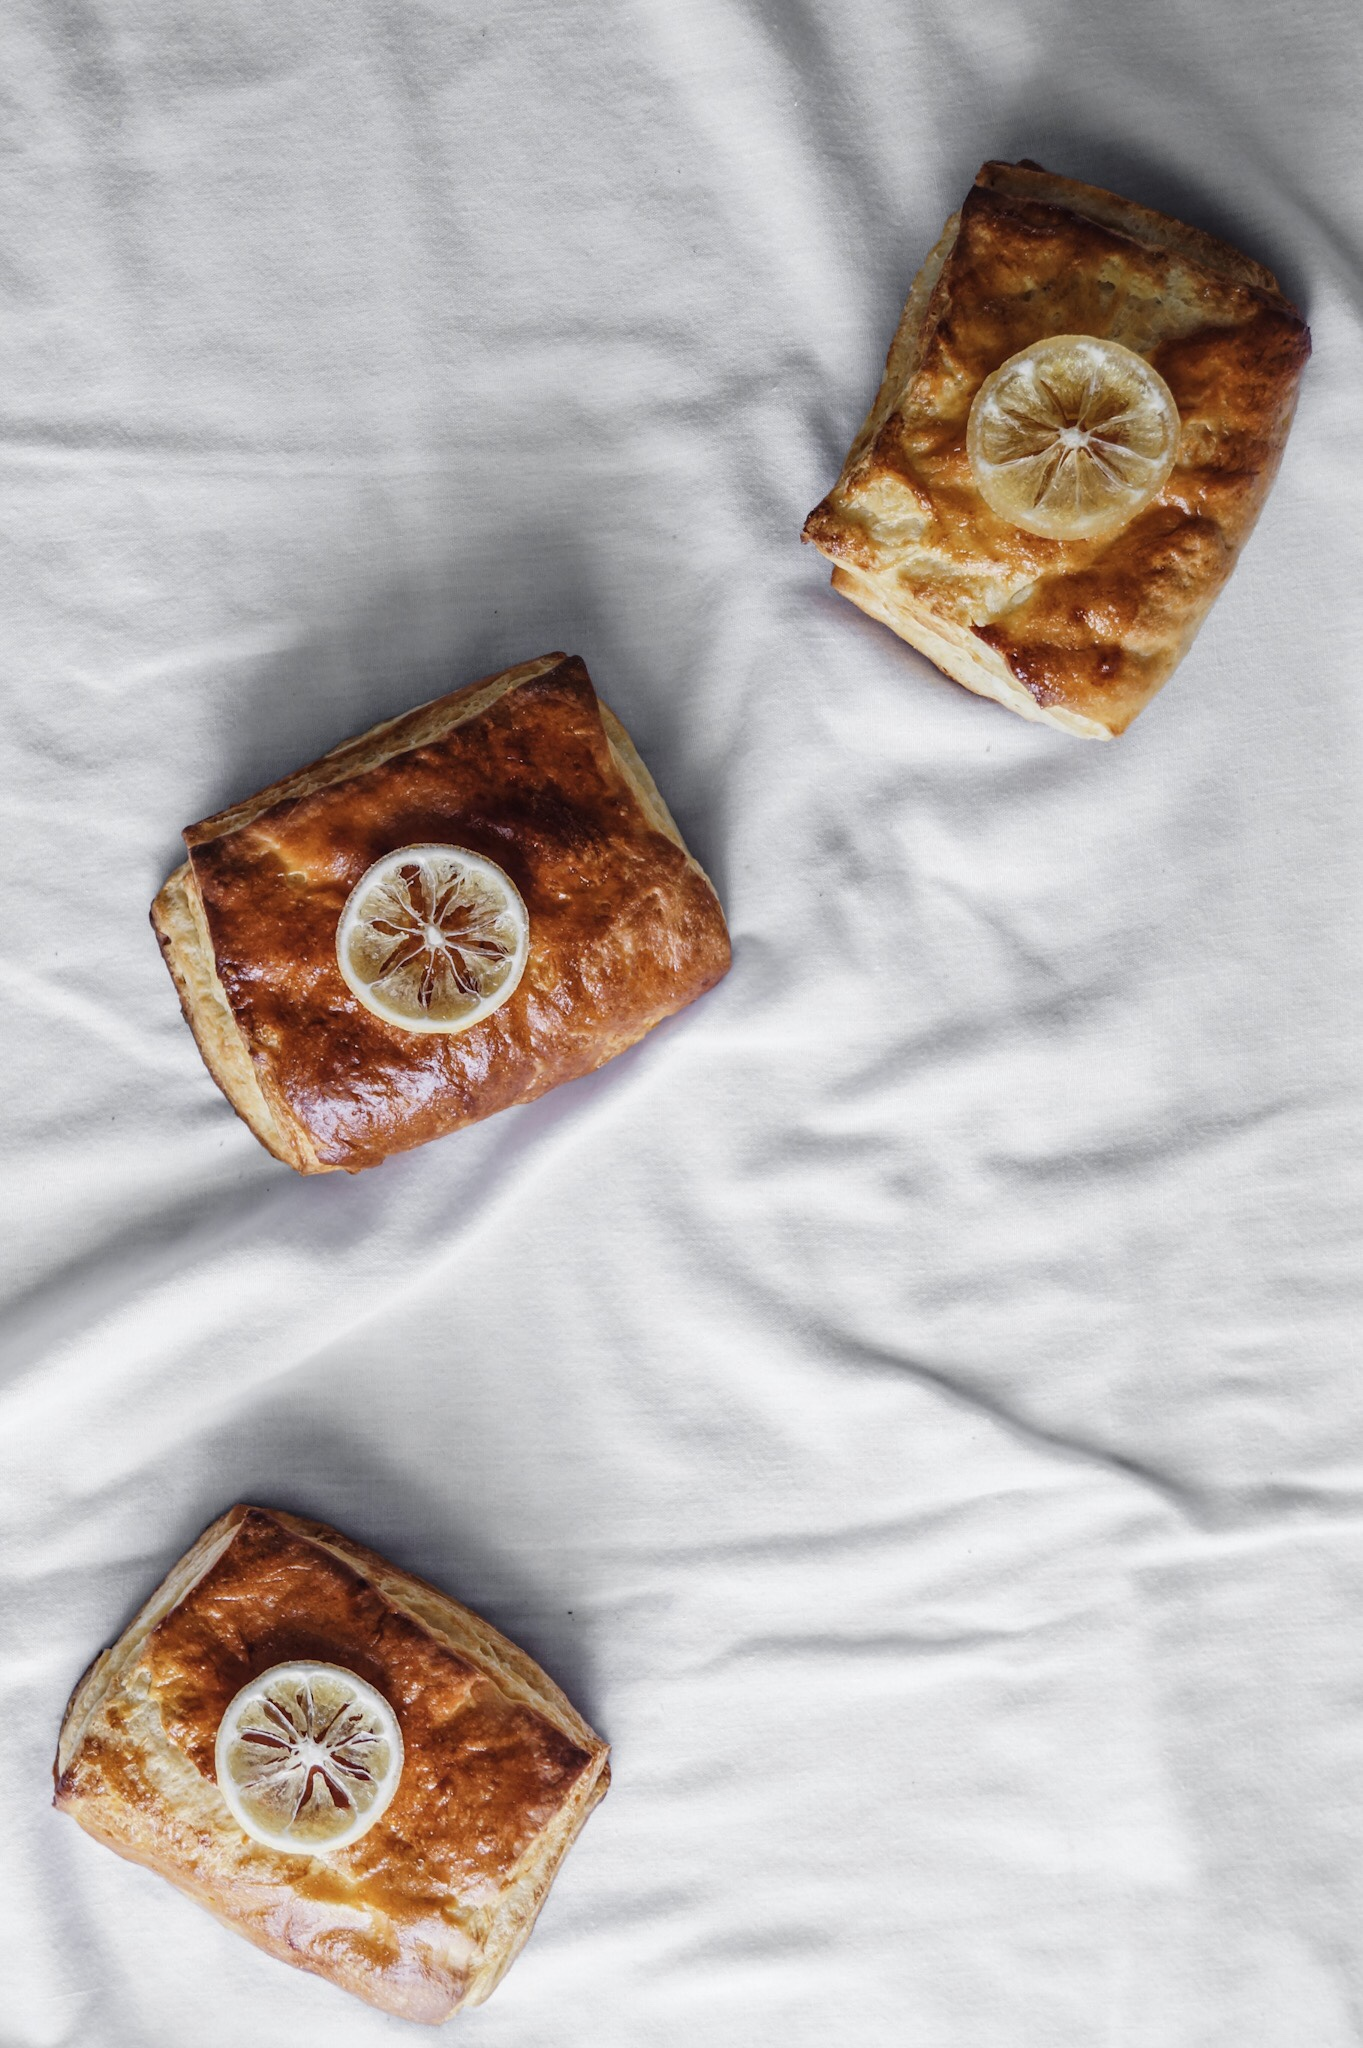 Super bright lemony filling tucked neatly inside the most delicious crispy-flaky Danish pastry. A early spring picnic and a wild story about boys. Lemon cream cheese danish pastry, homemade recipe. By Mandy Tetrault